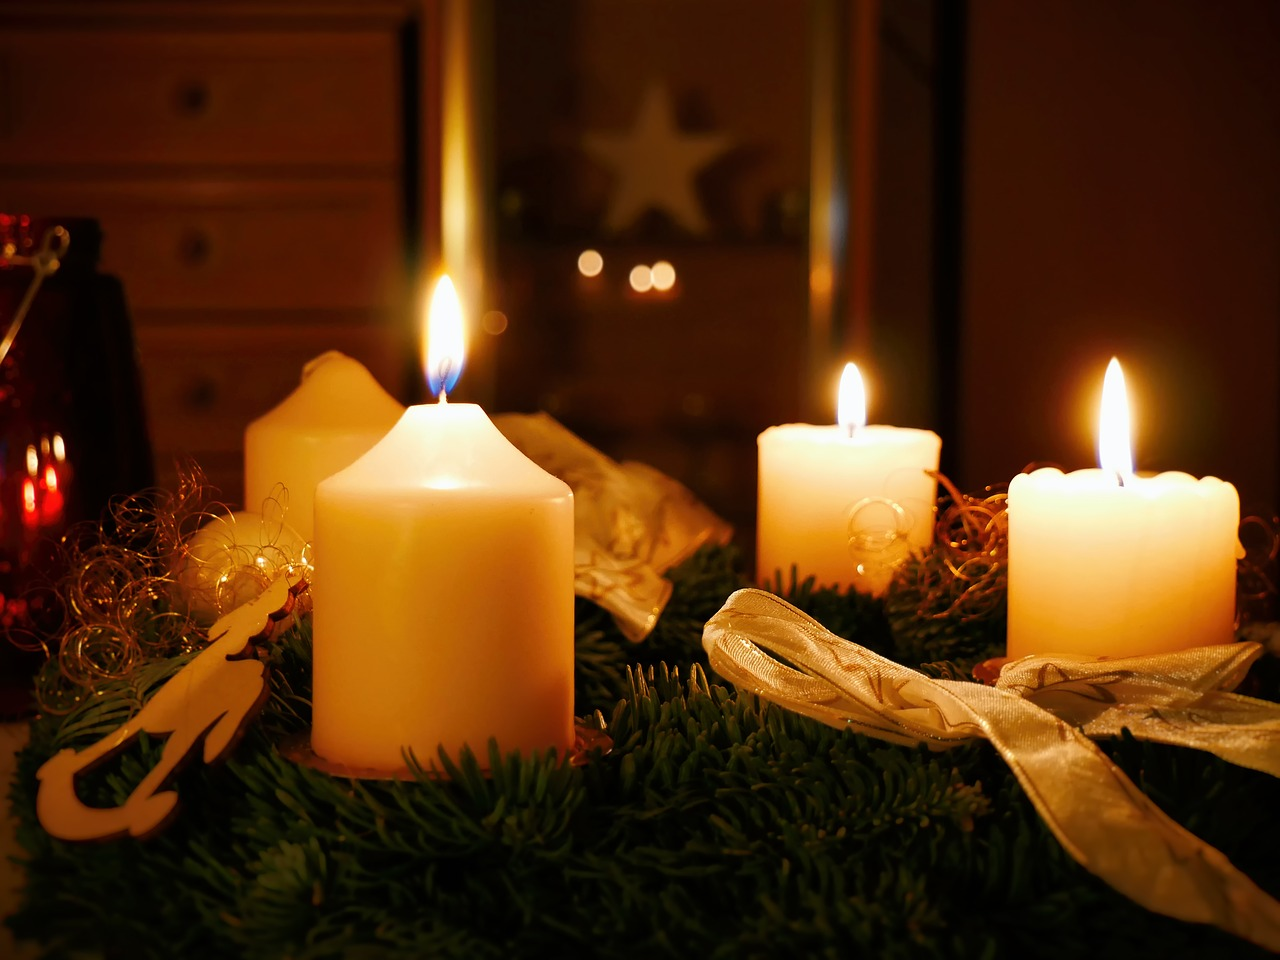 remembering deceased loved ones during the holidays